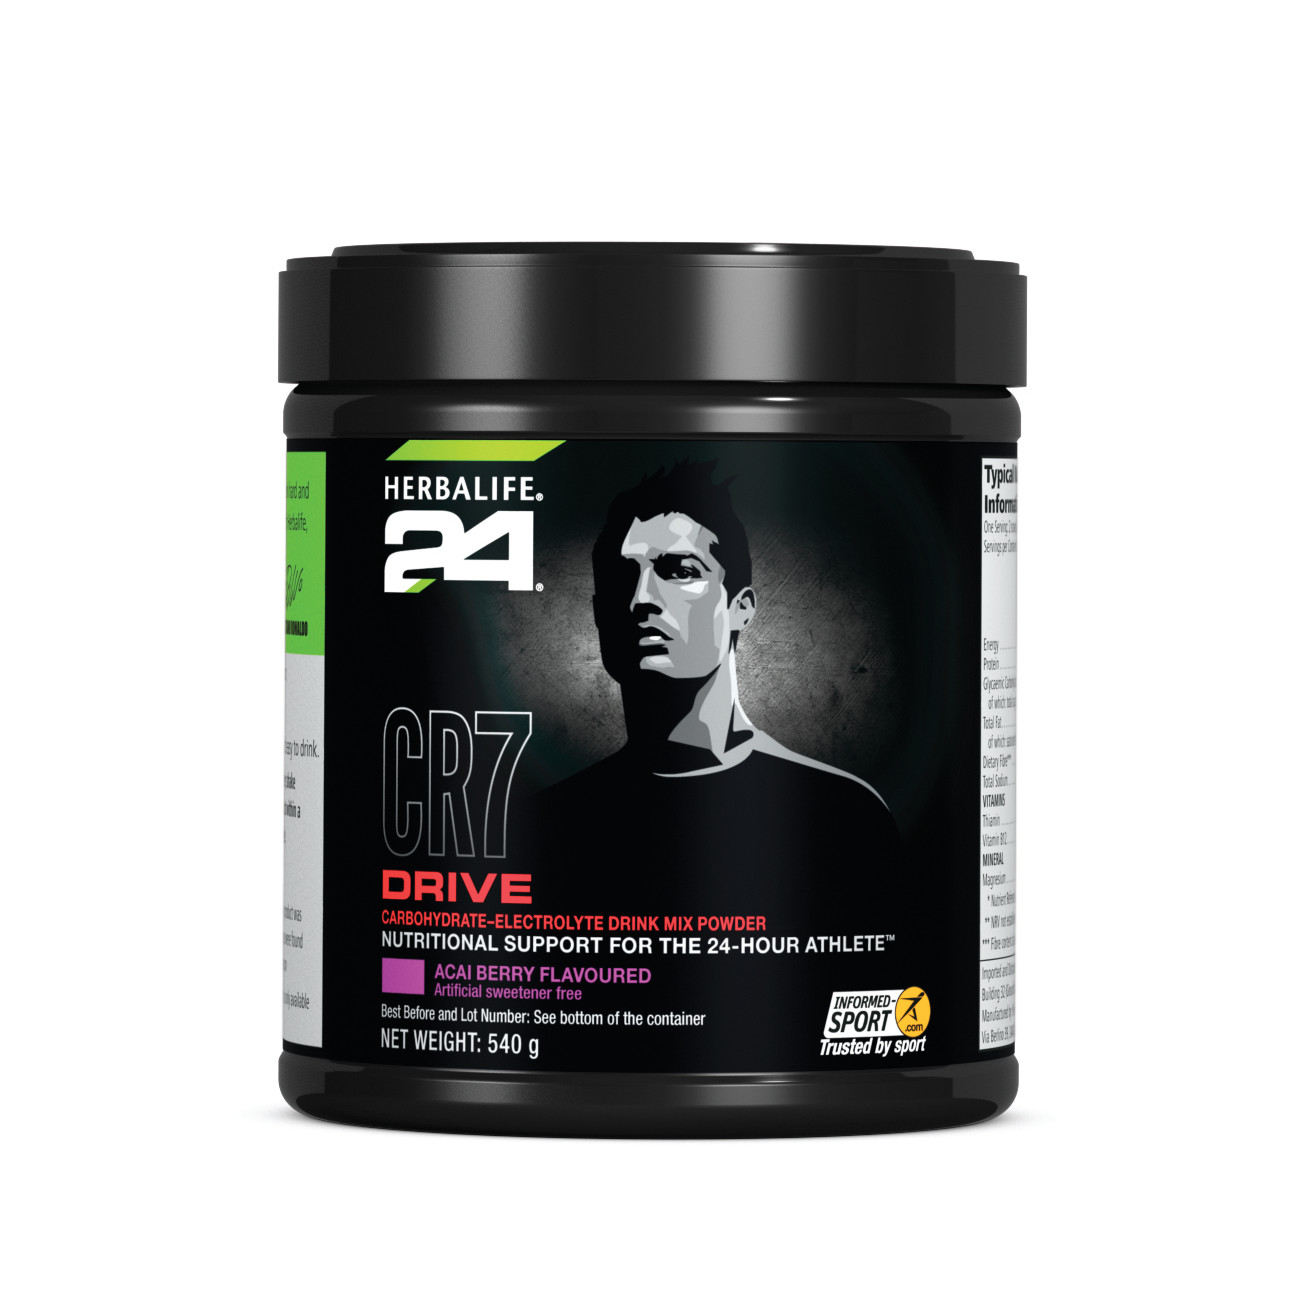 Herbalife24® CR7 Drive Carbohydrate-Electrolyte Drink Mix Acai Berry Flavoured 540 g product shot